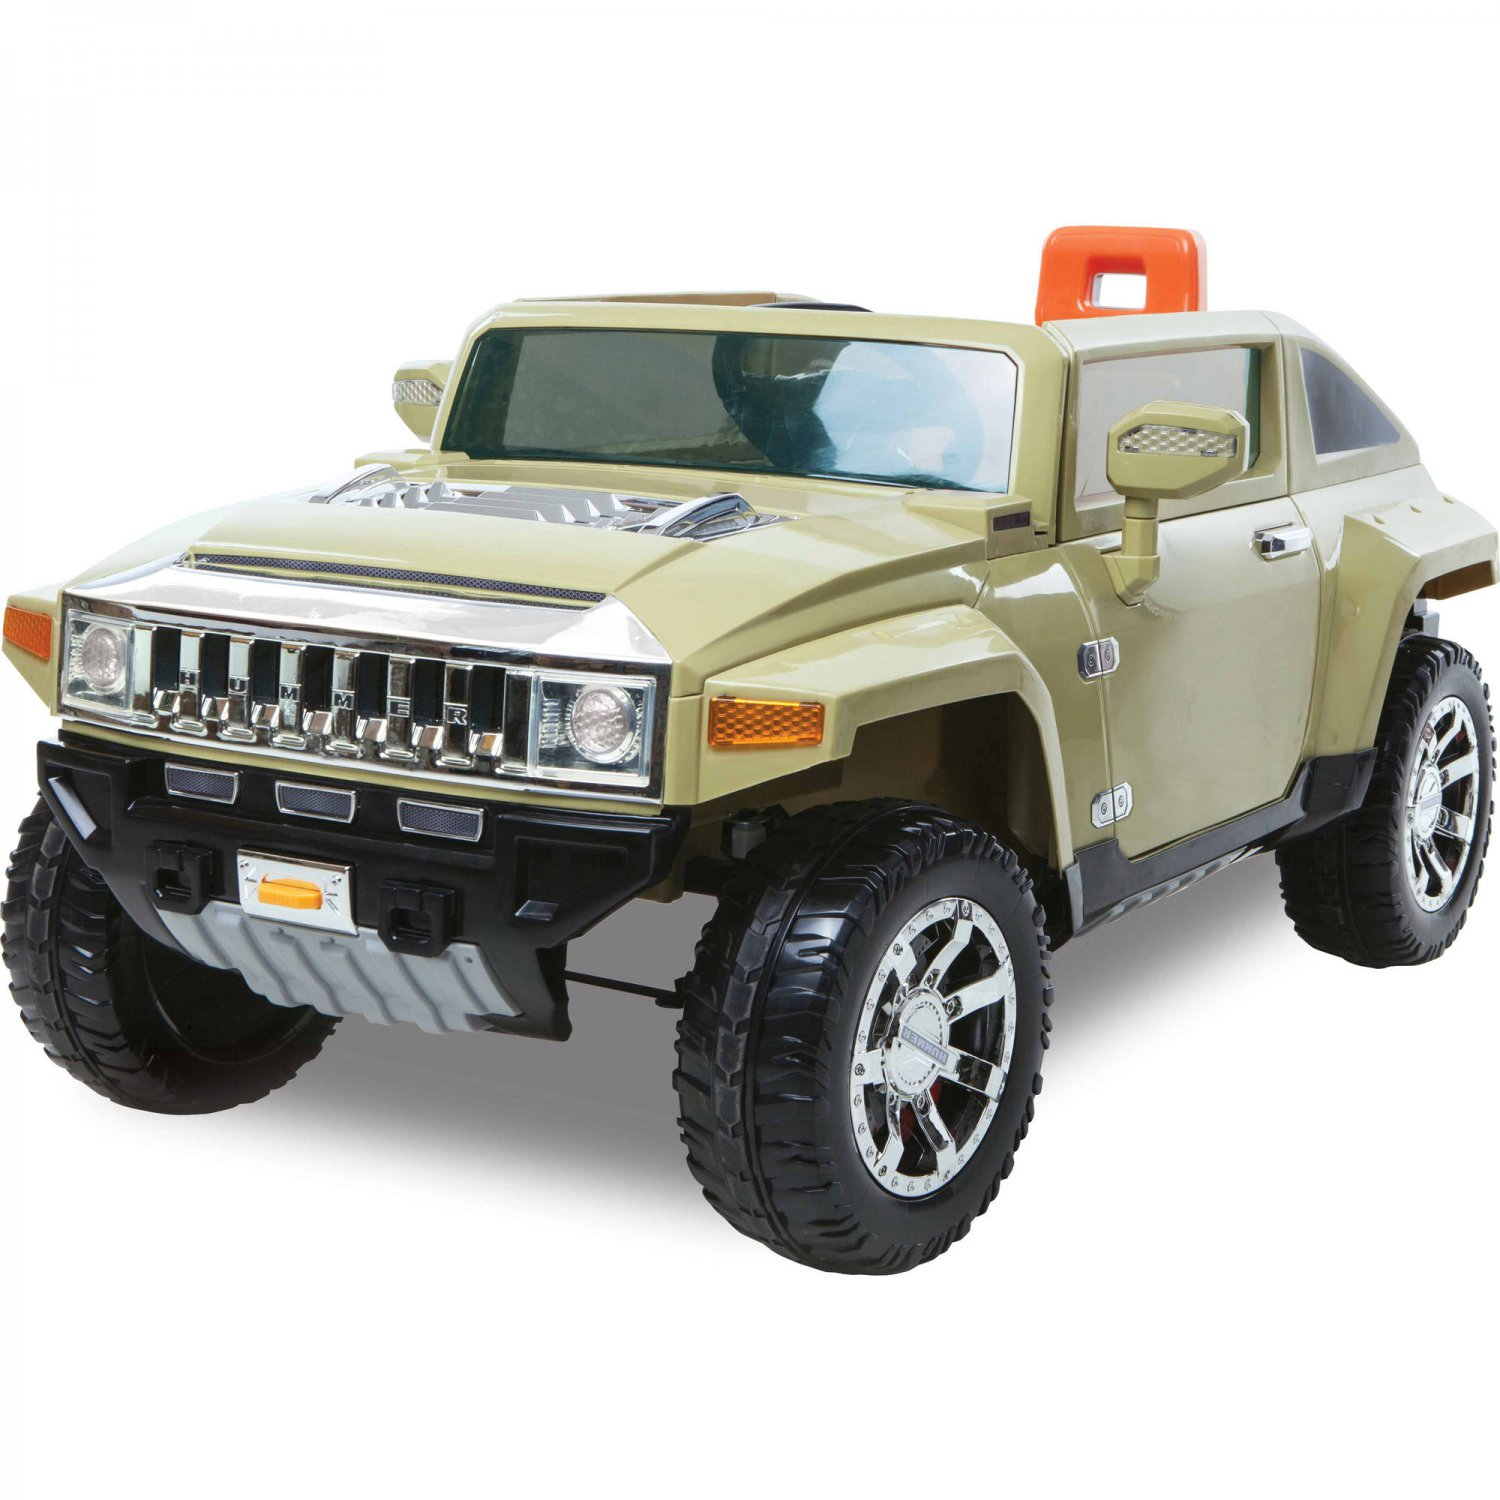 144V Hummer HX 14-Seater Battery-Powered Ride-On, Olive sold by Goodness &  Mercy   12v hummer